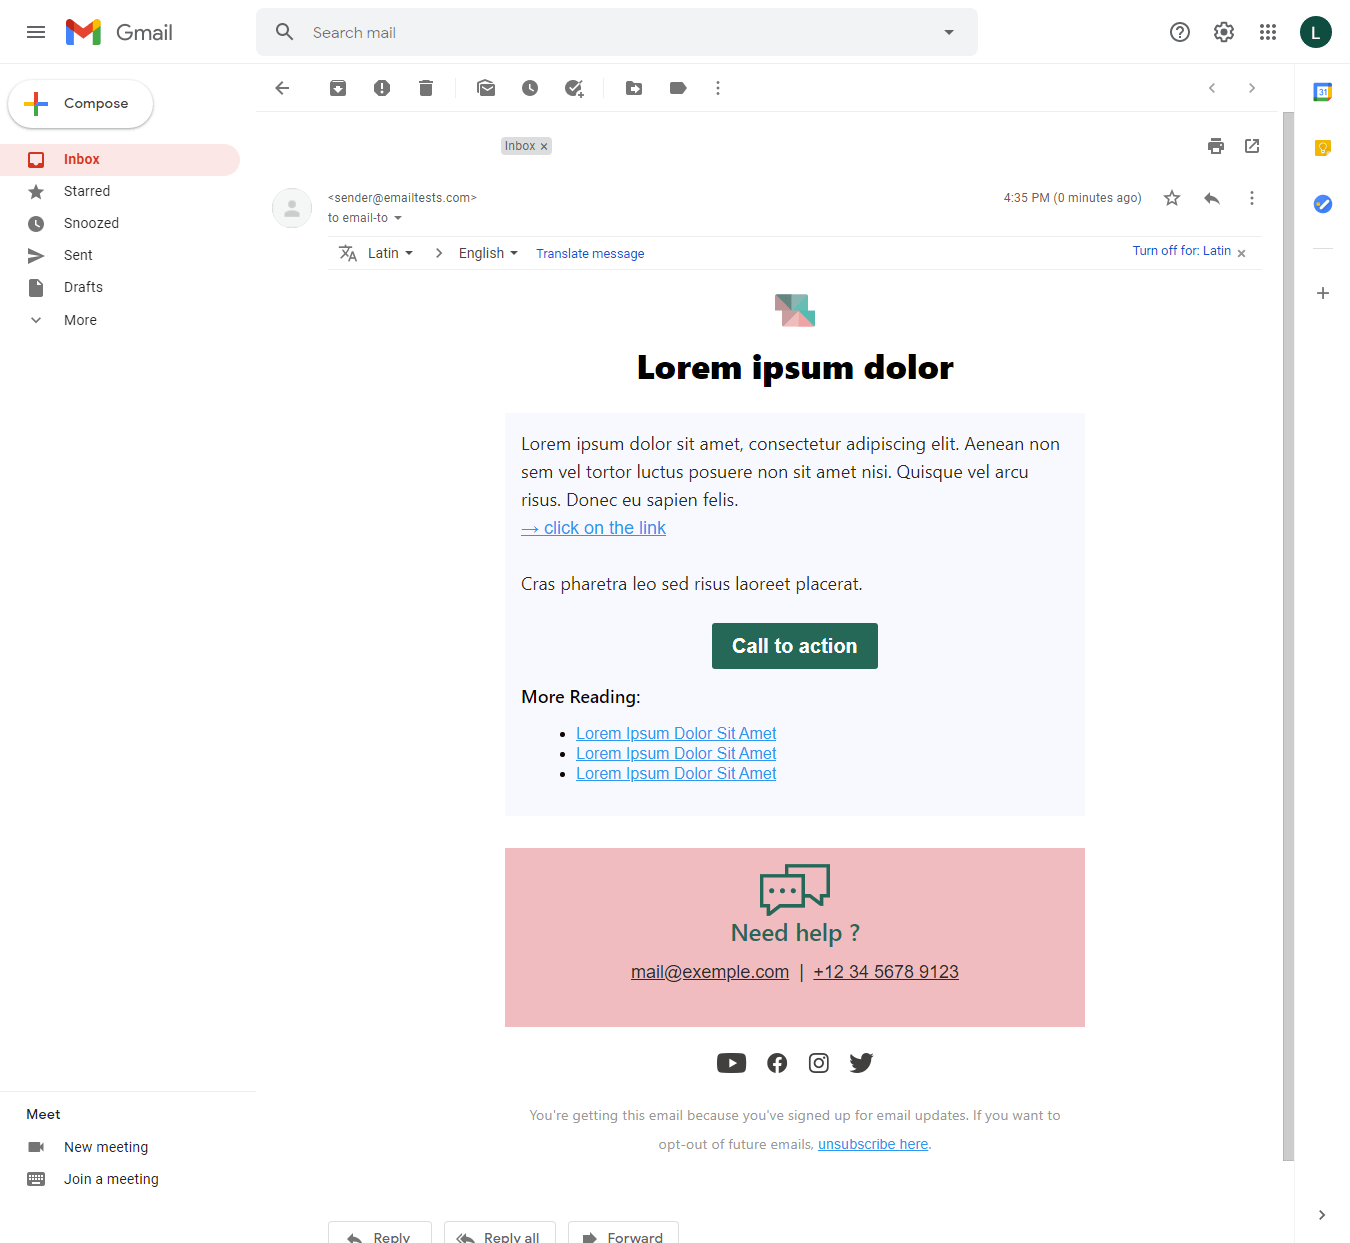 Screenshot of Simplicity account information email display on Gmail